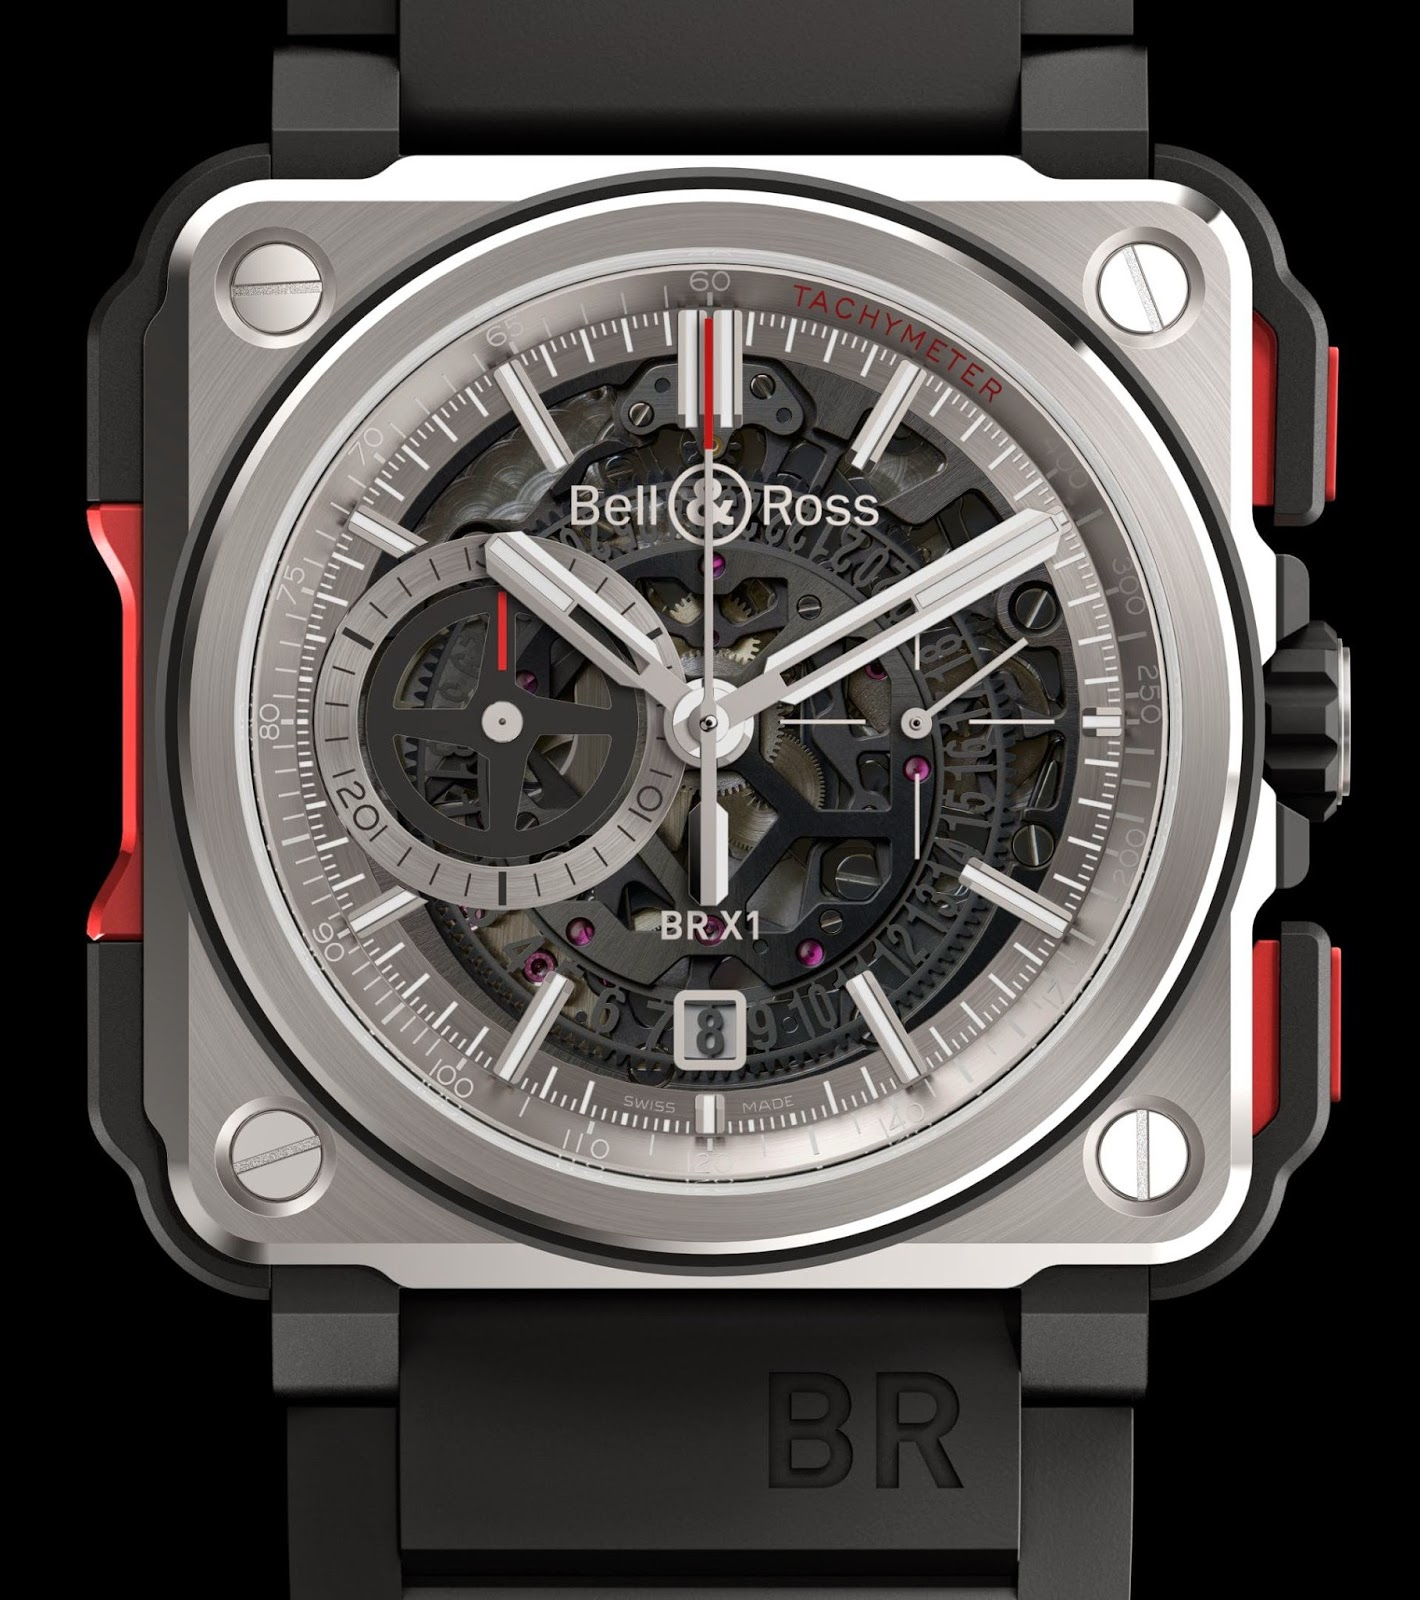 neue uhr bell ross br x1 skeleton chronograph. Black Bedroom Furniture Sets. Home Design Ideas